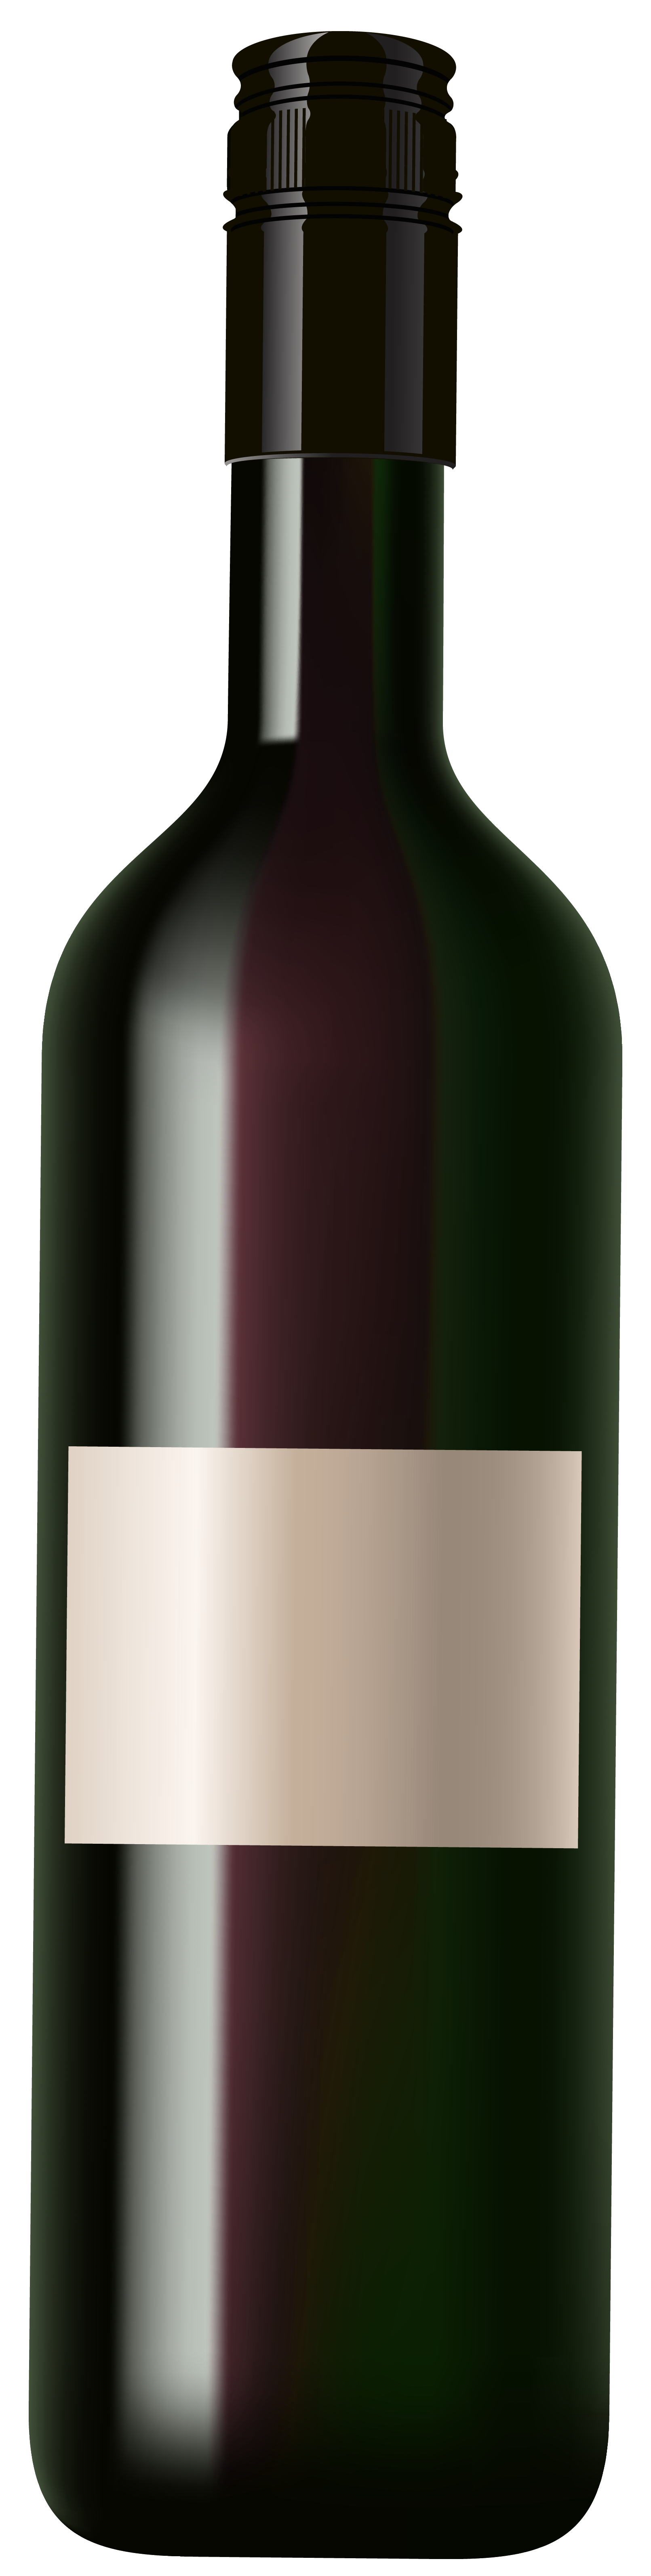 Wine bottle clipart png. Collection of high